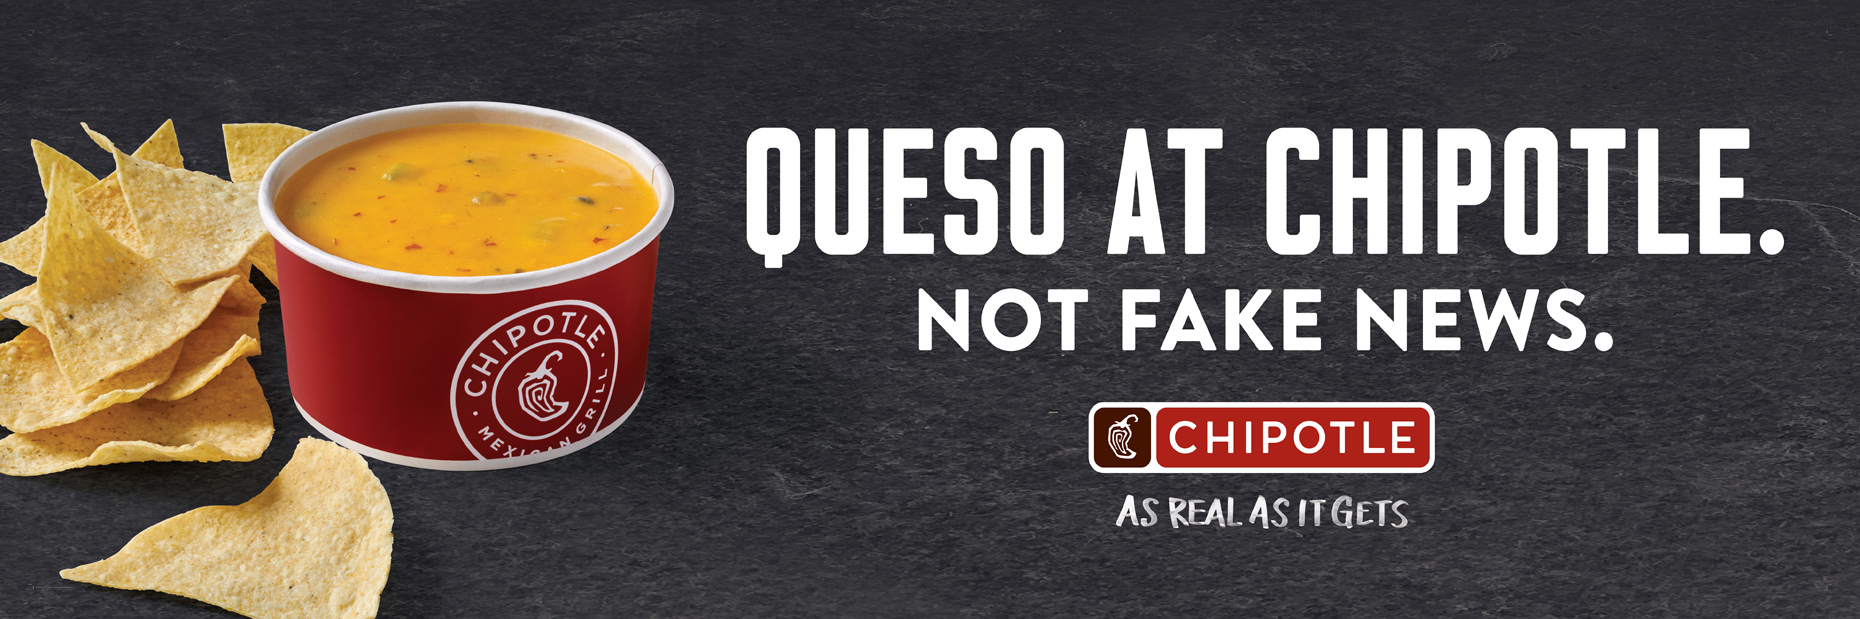 CMG17Q3_OOH_QUESO_10